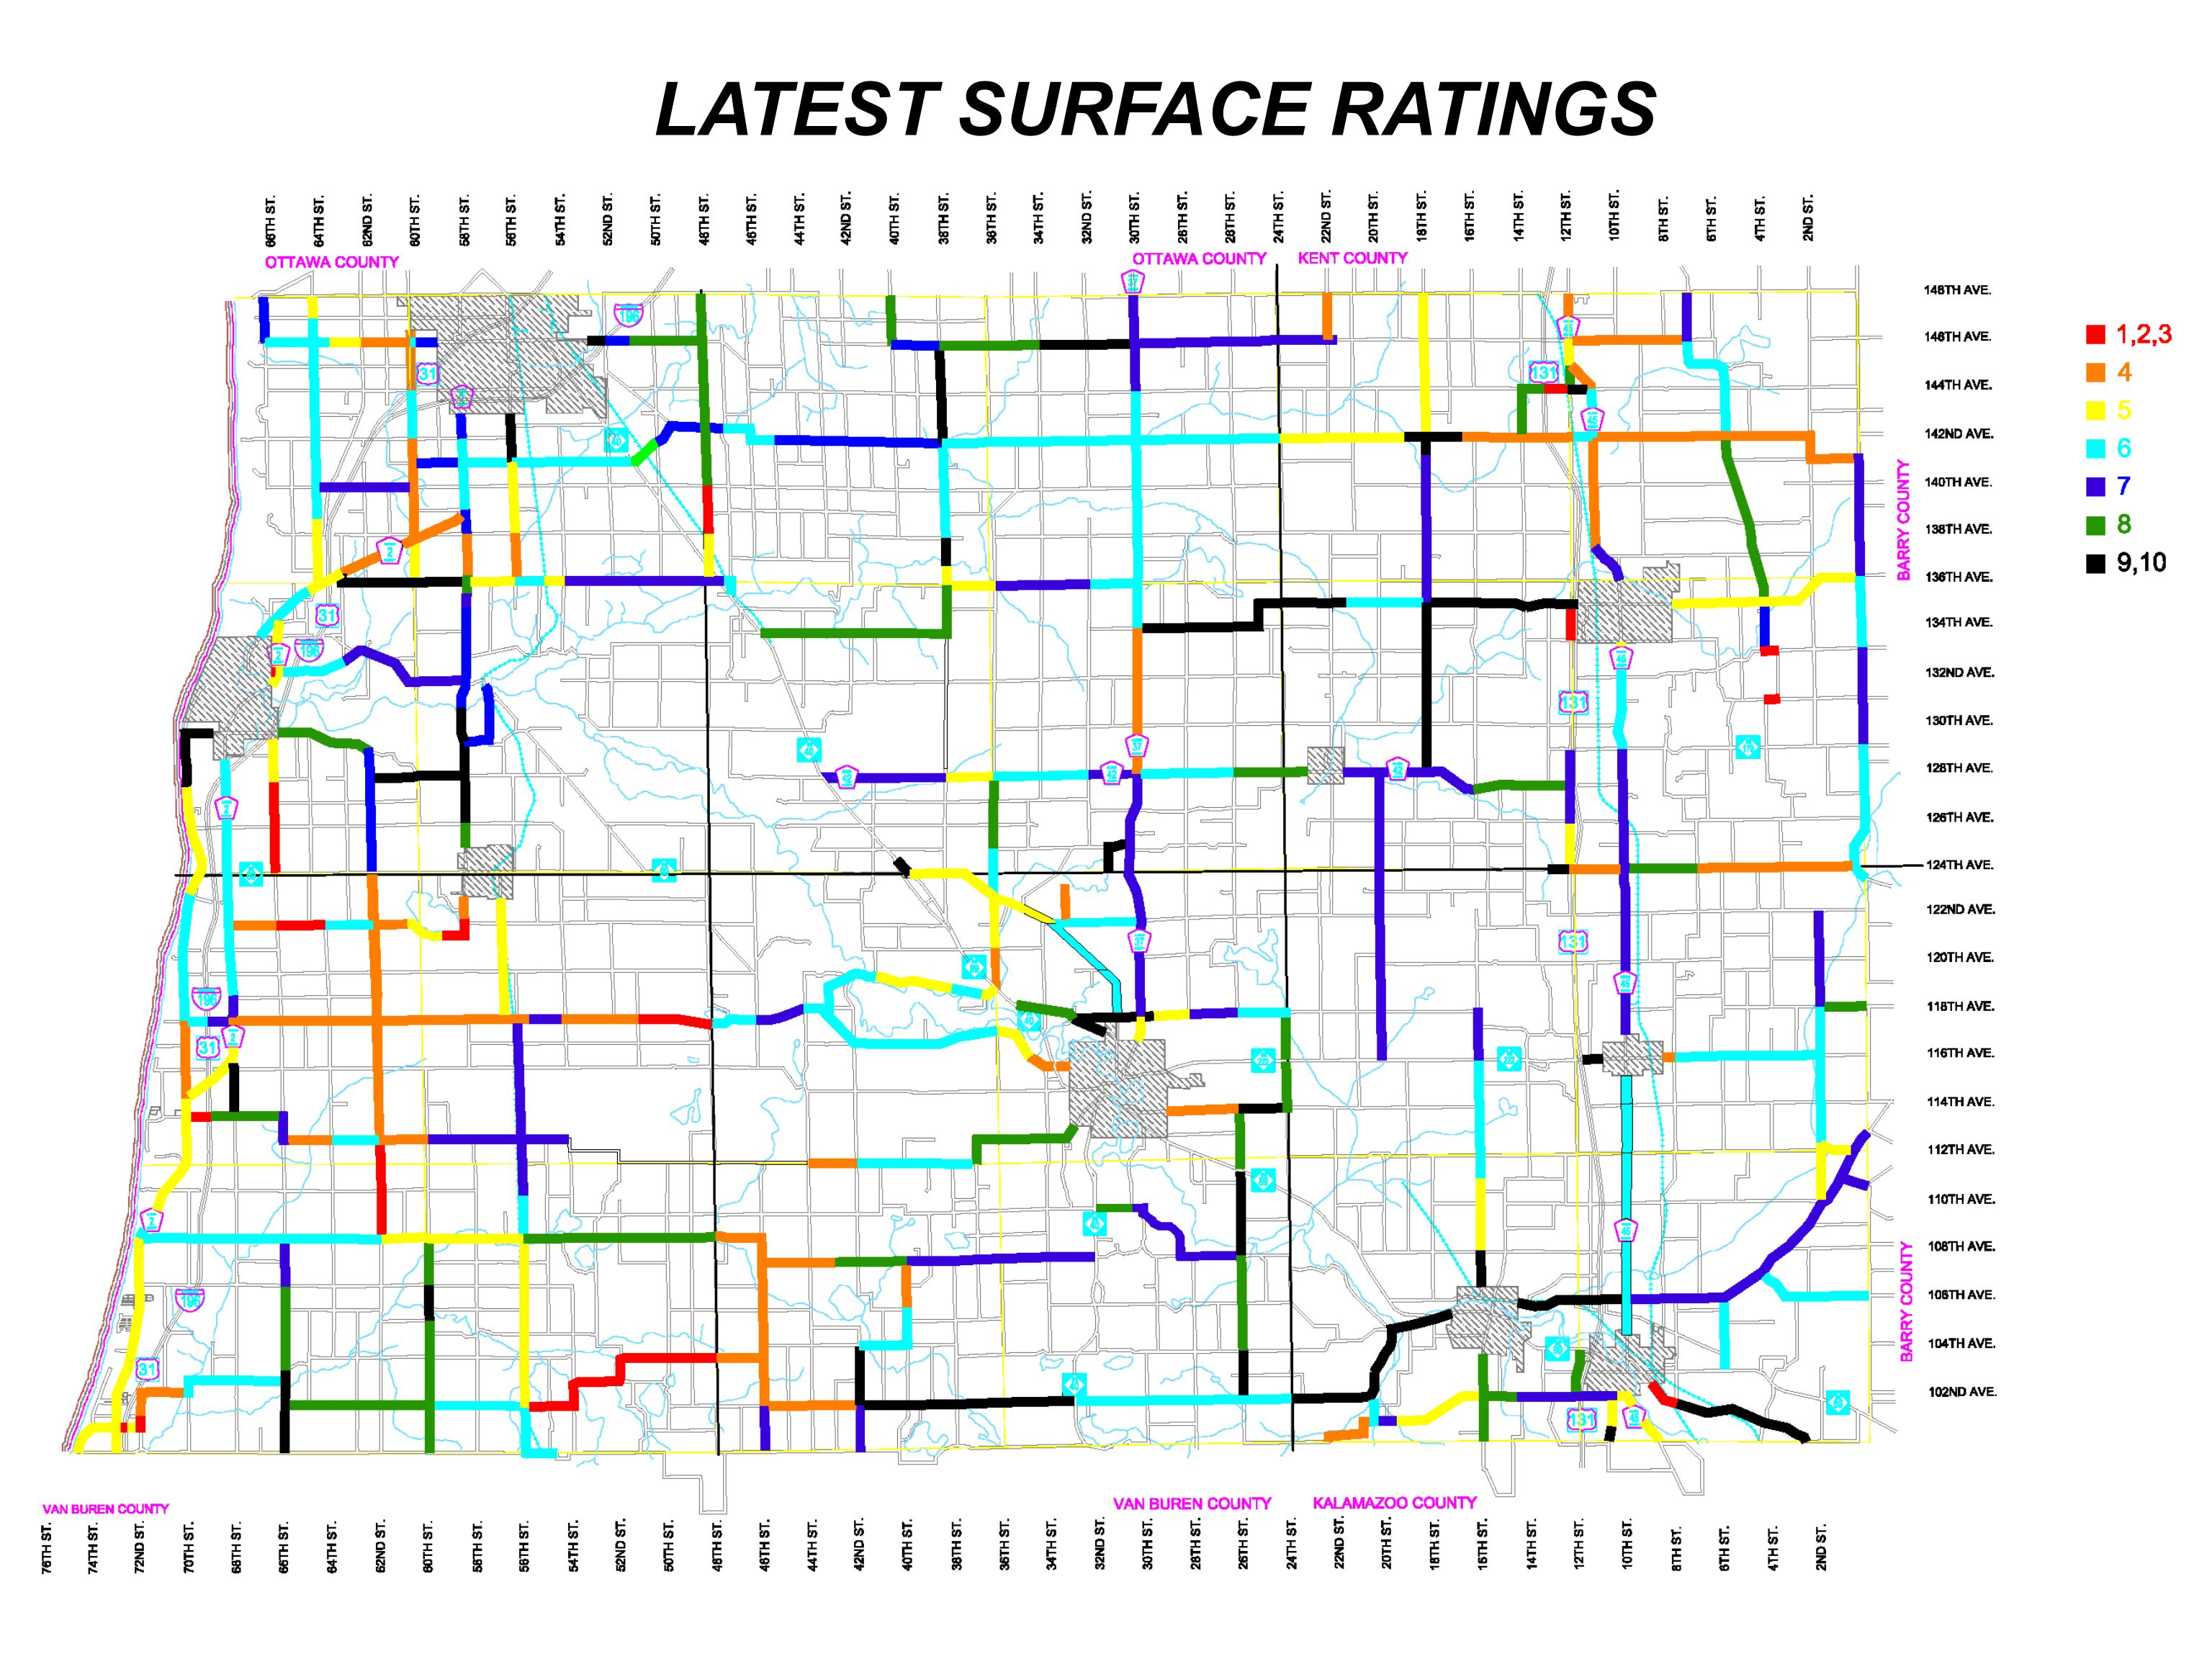 LATEST SURFACE RATINGS